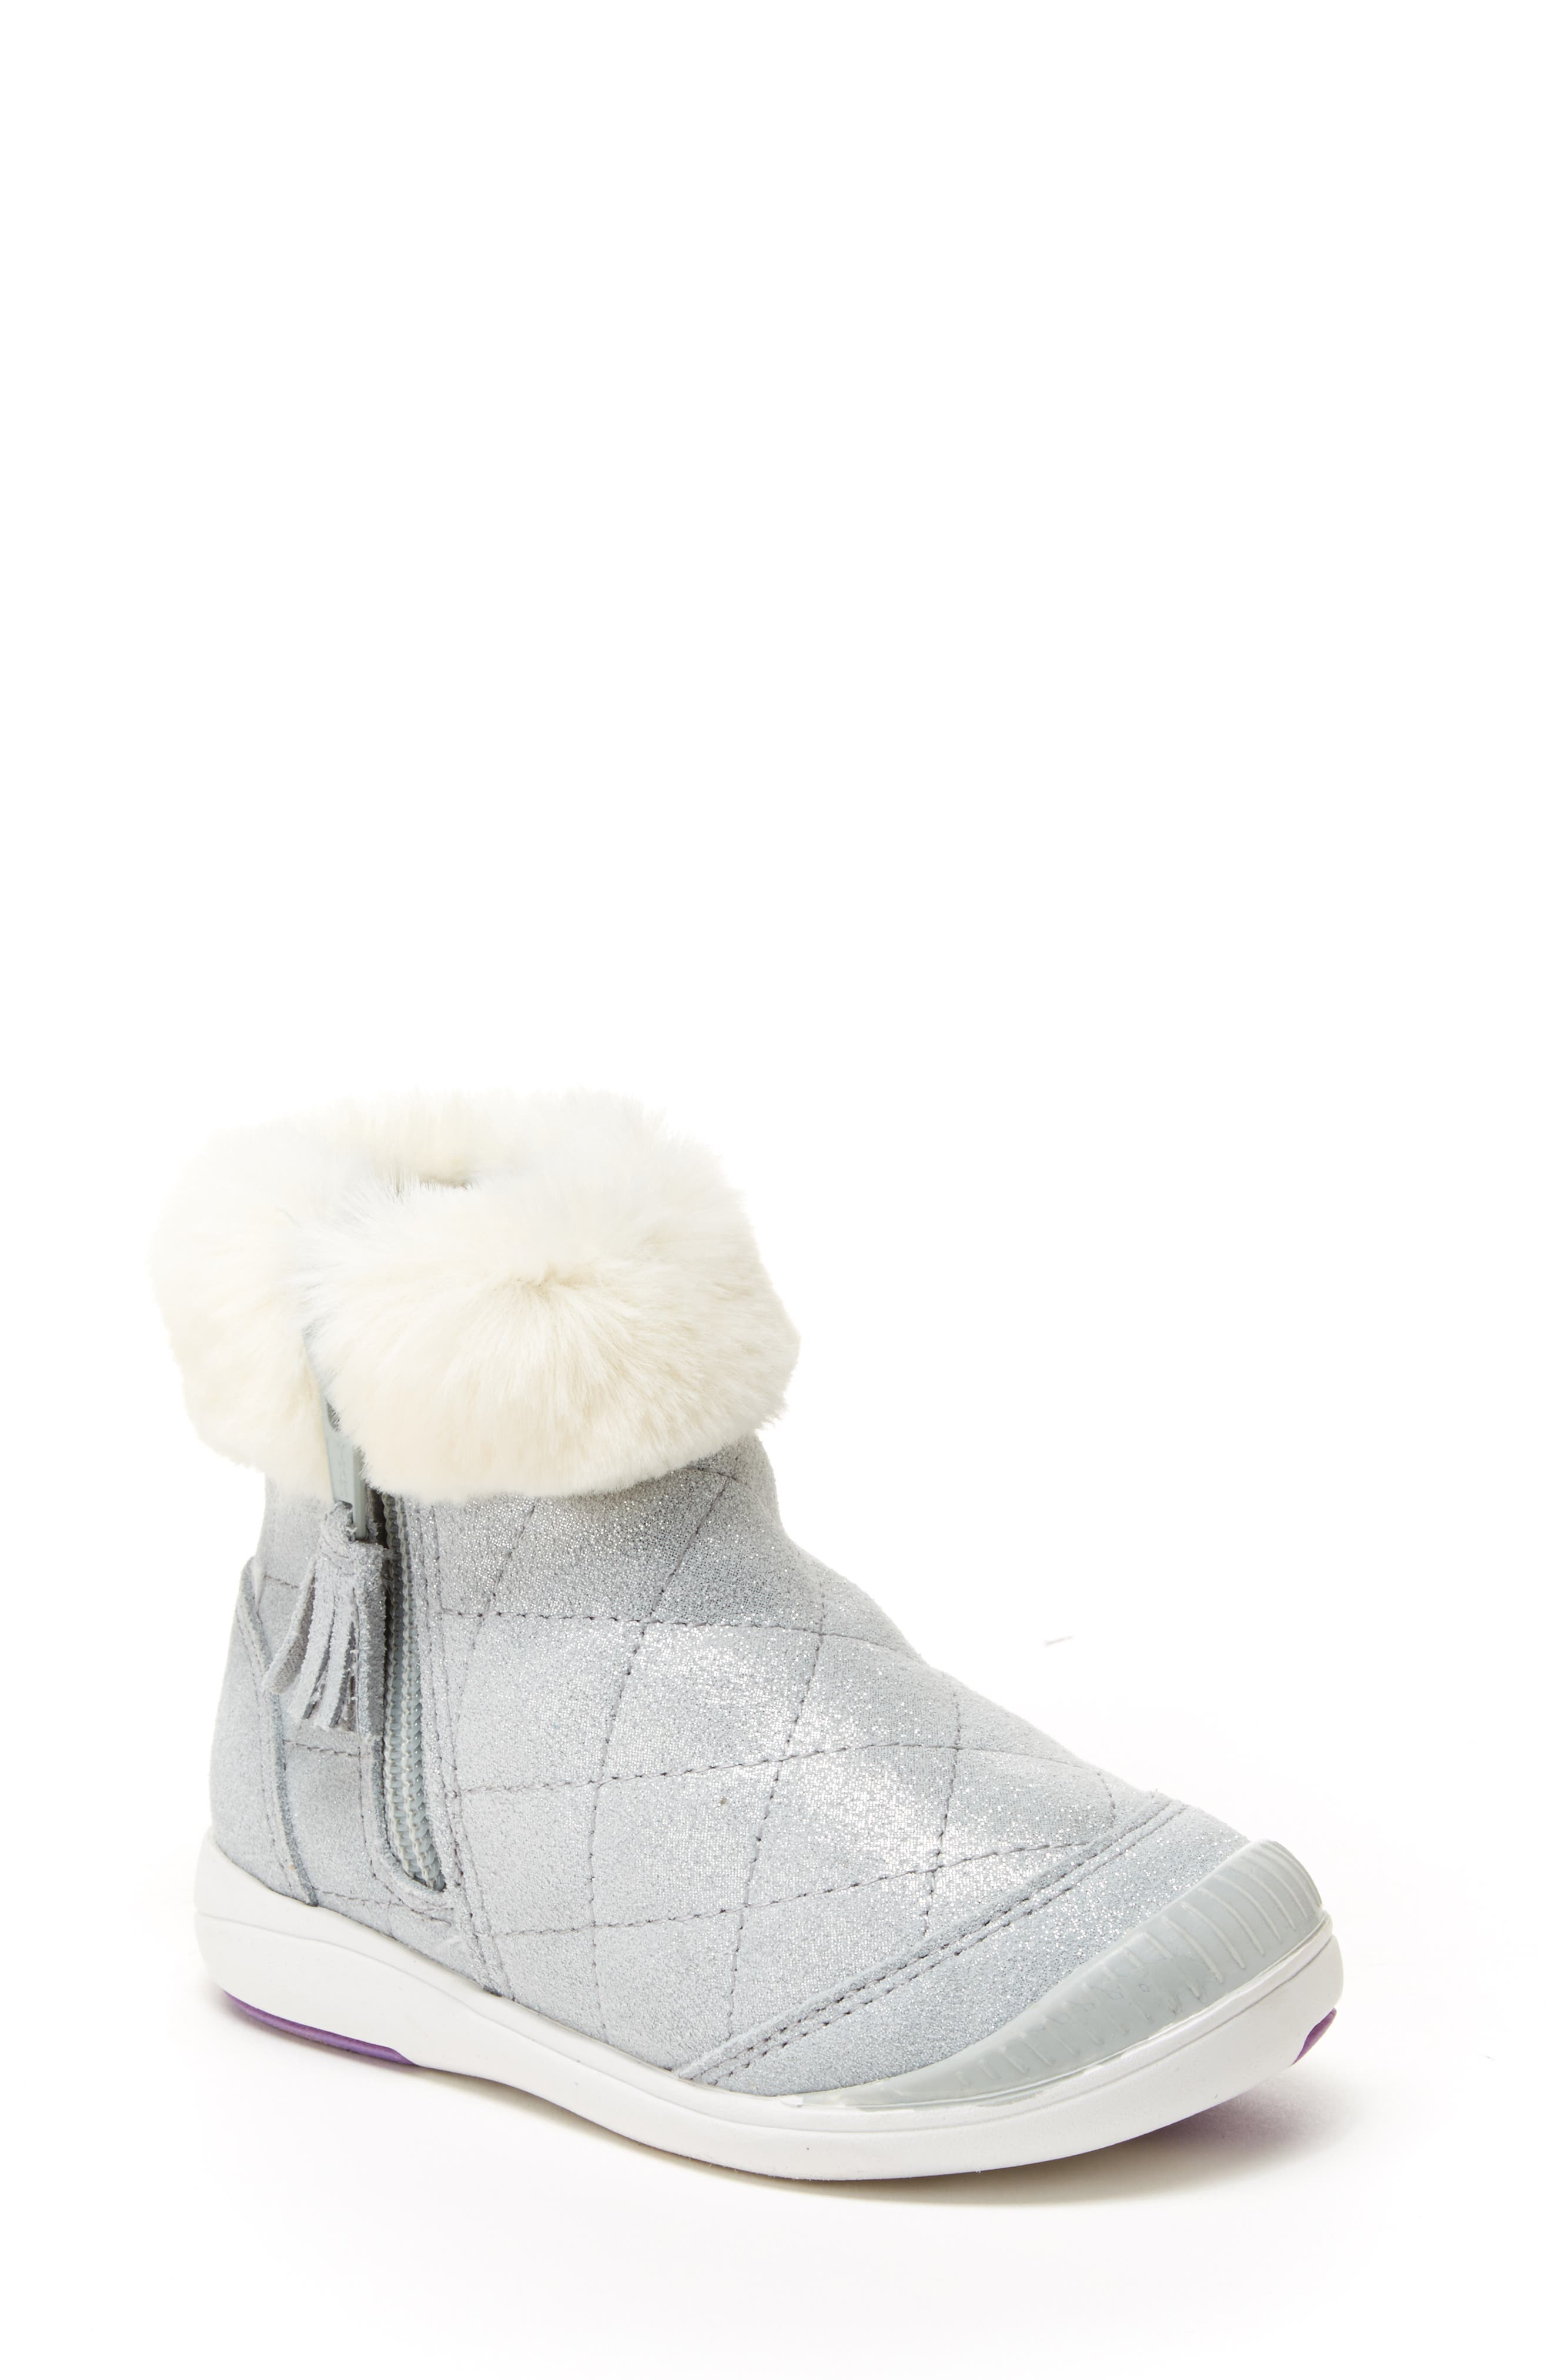 Chloe Faux Fur Quilted Bootie,                             Main thumbnail 1, color,                             SILVER